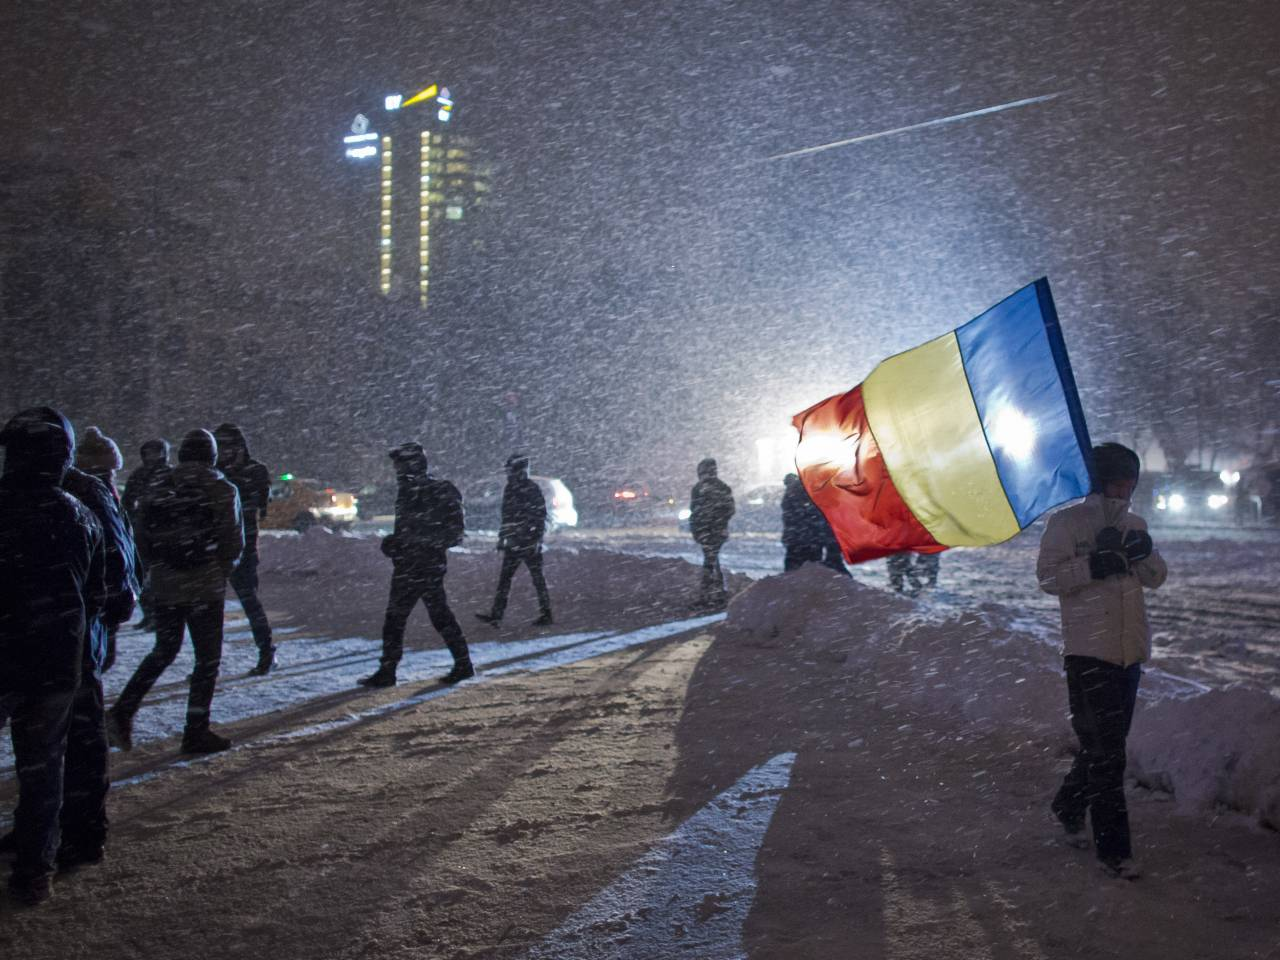 Romania's Justice Minister Quits as Mass Protests Persist